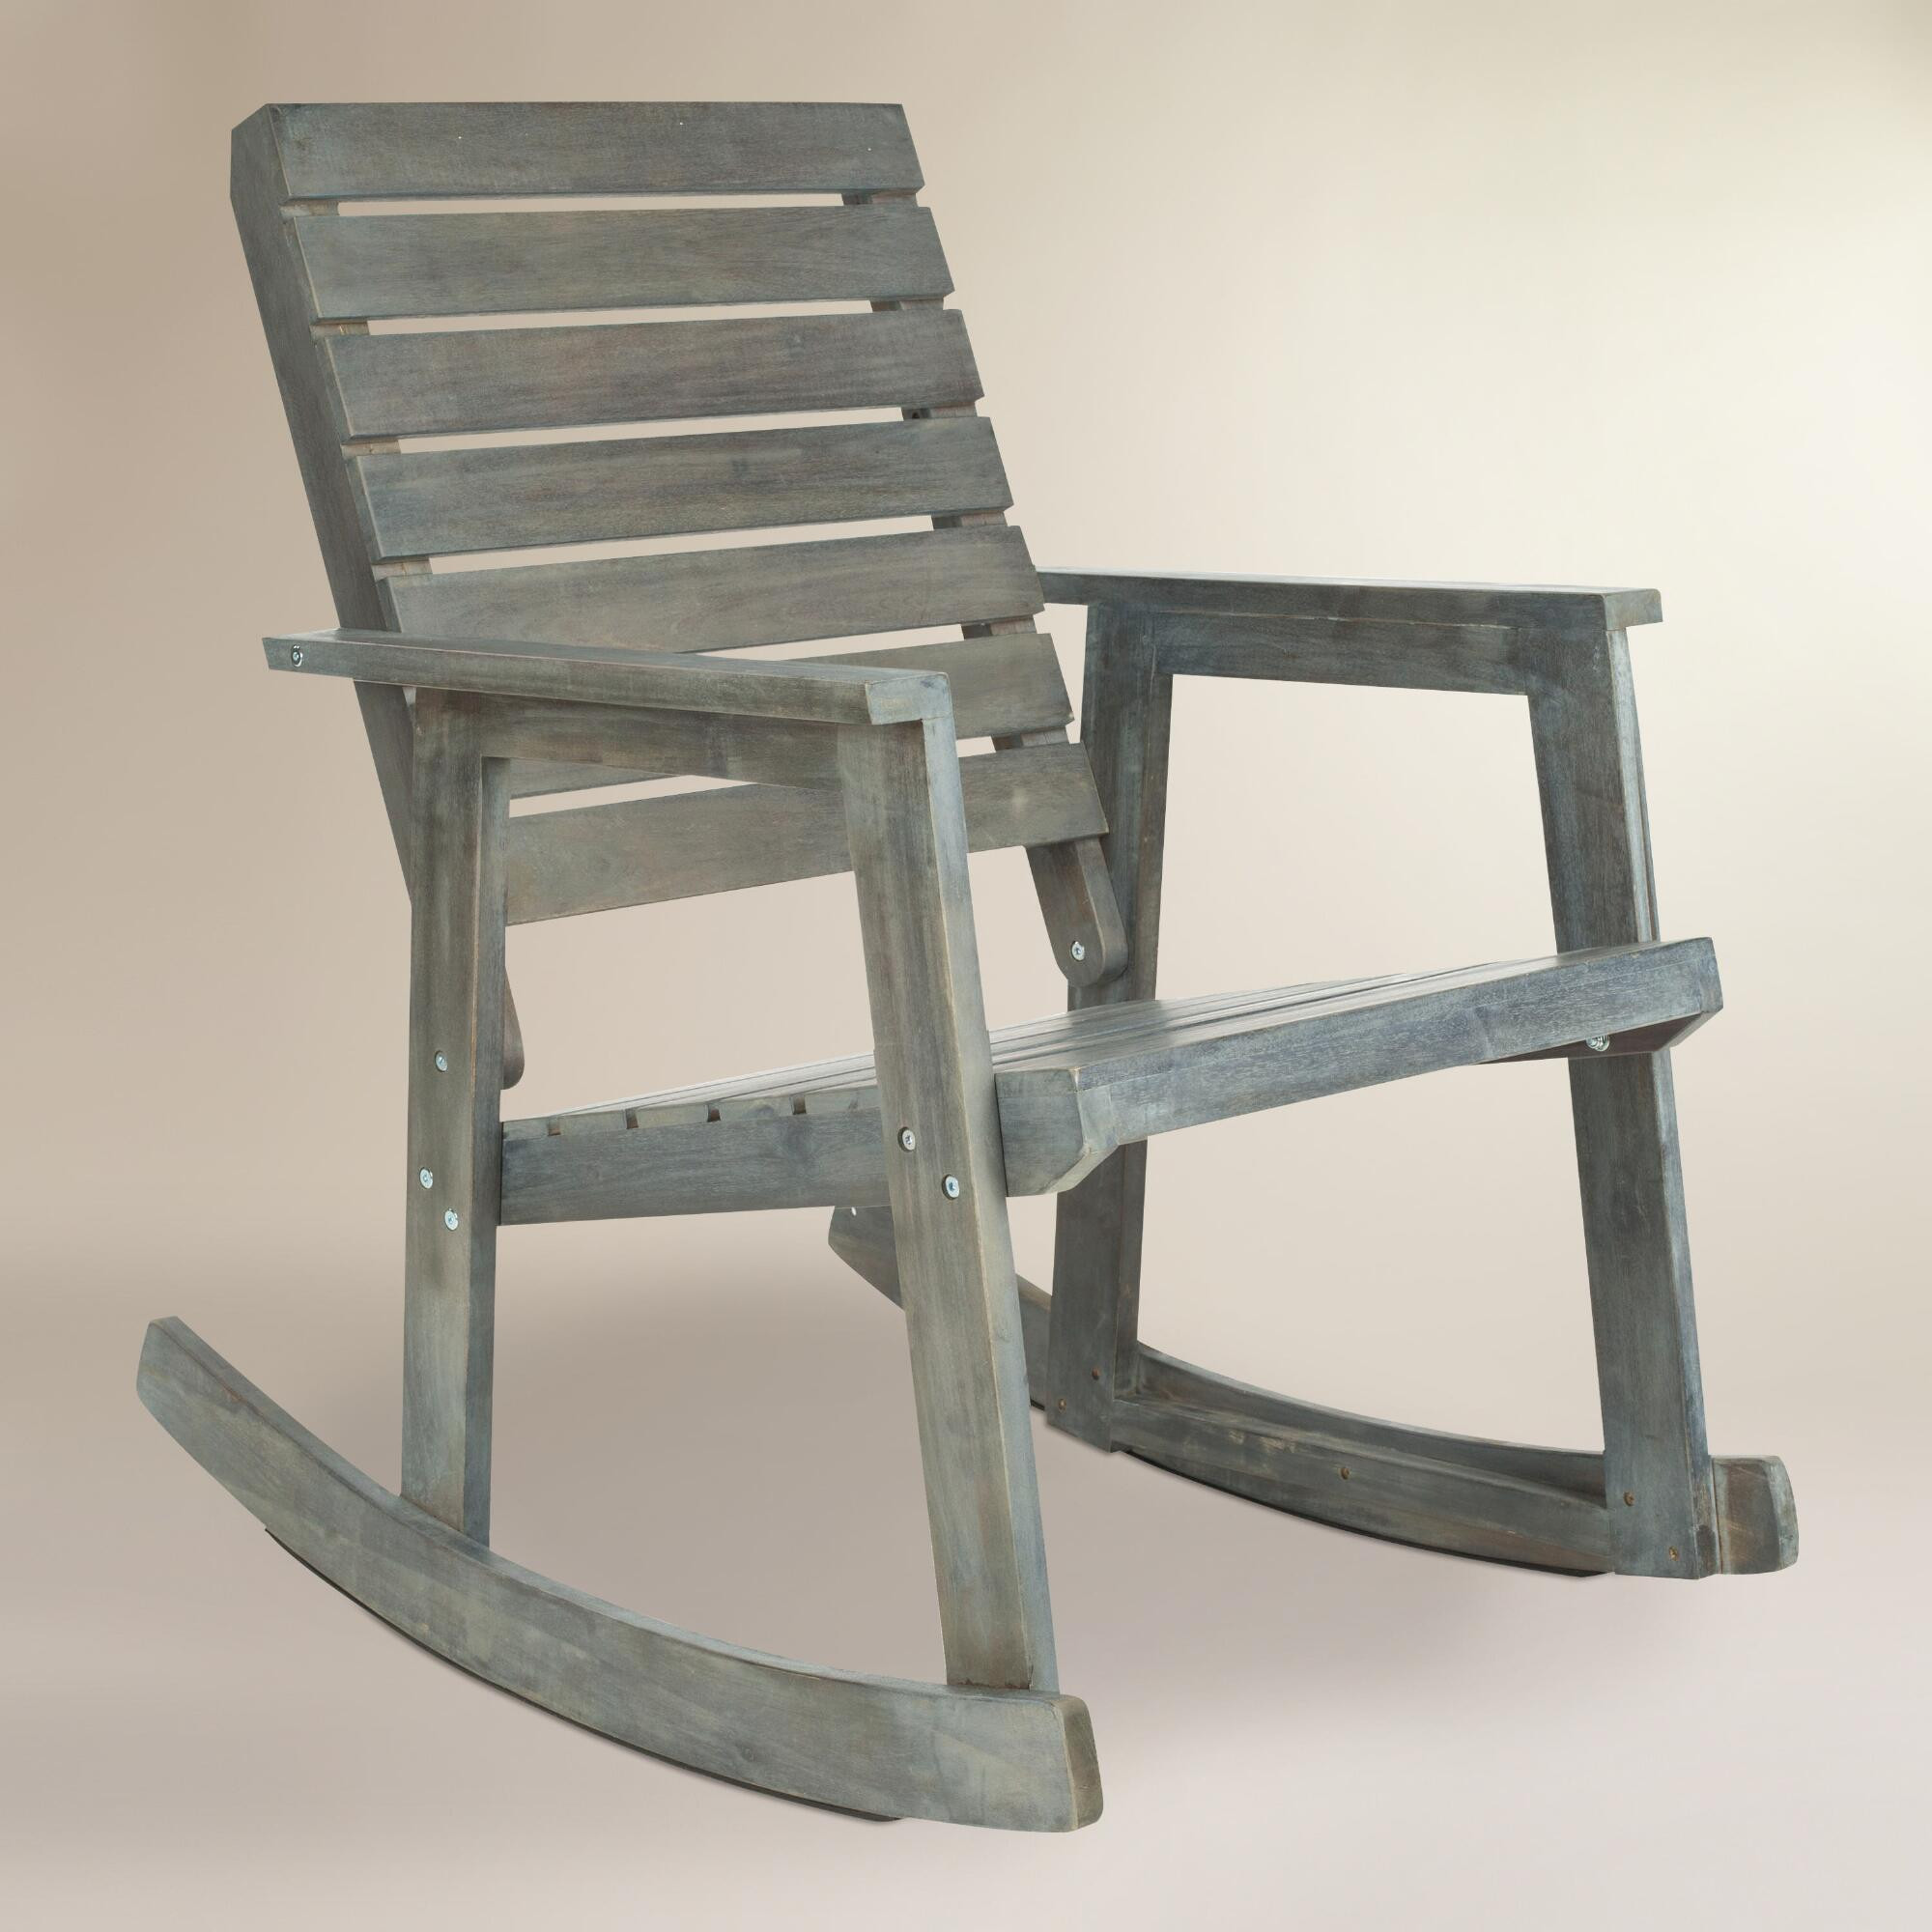 Best ideas about Outdoor Rocking Chairs . Save or Pin Ash Gray Wood Outdoor Rocking Chair Now.